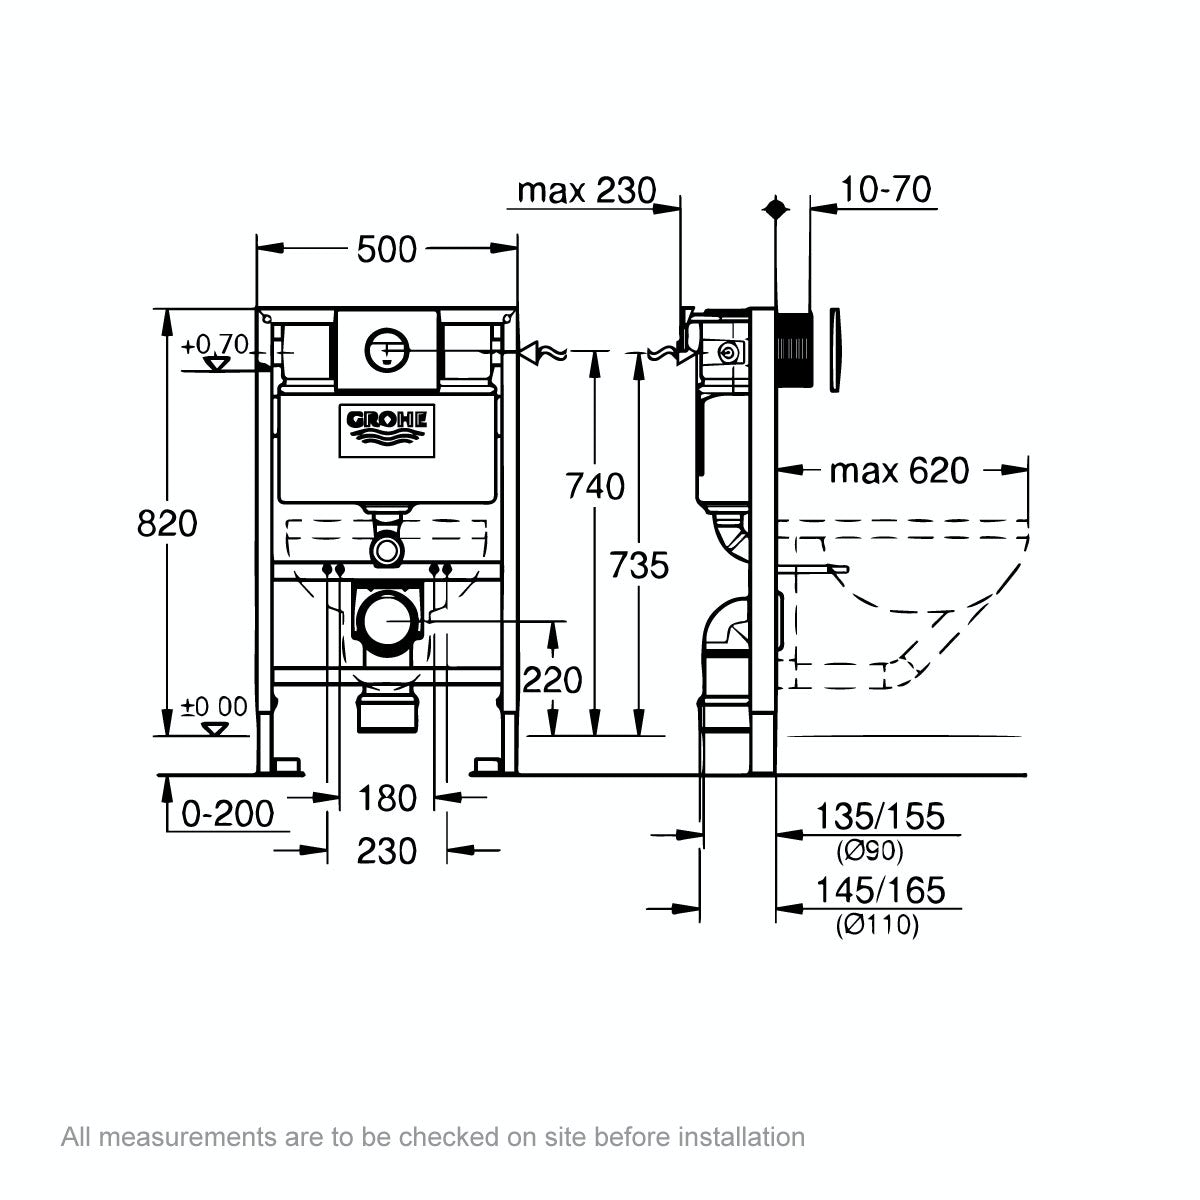 Dimensions for Grohe Rapid SL Set 3 in 1 wall mounting frame with round push button Nova Cosmopolitan flush plate 0.82m